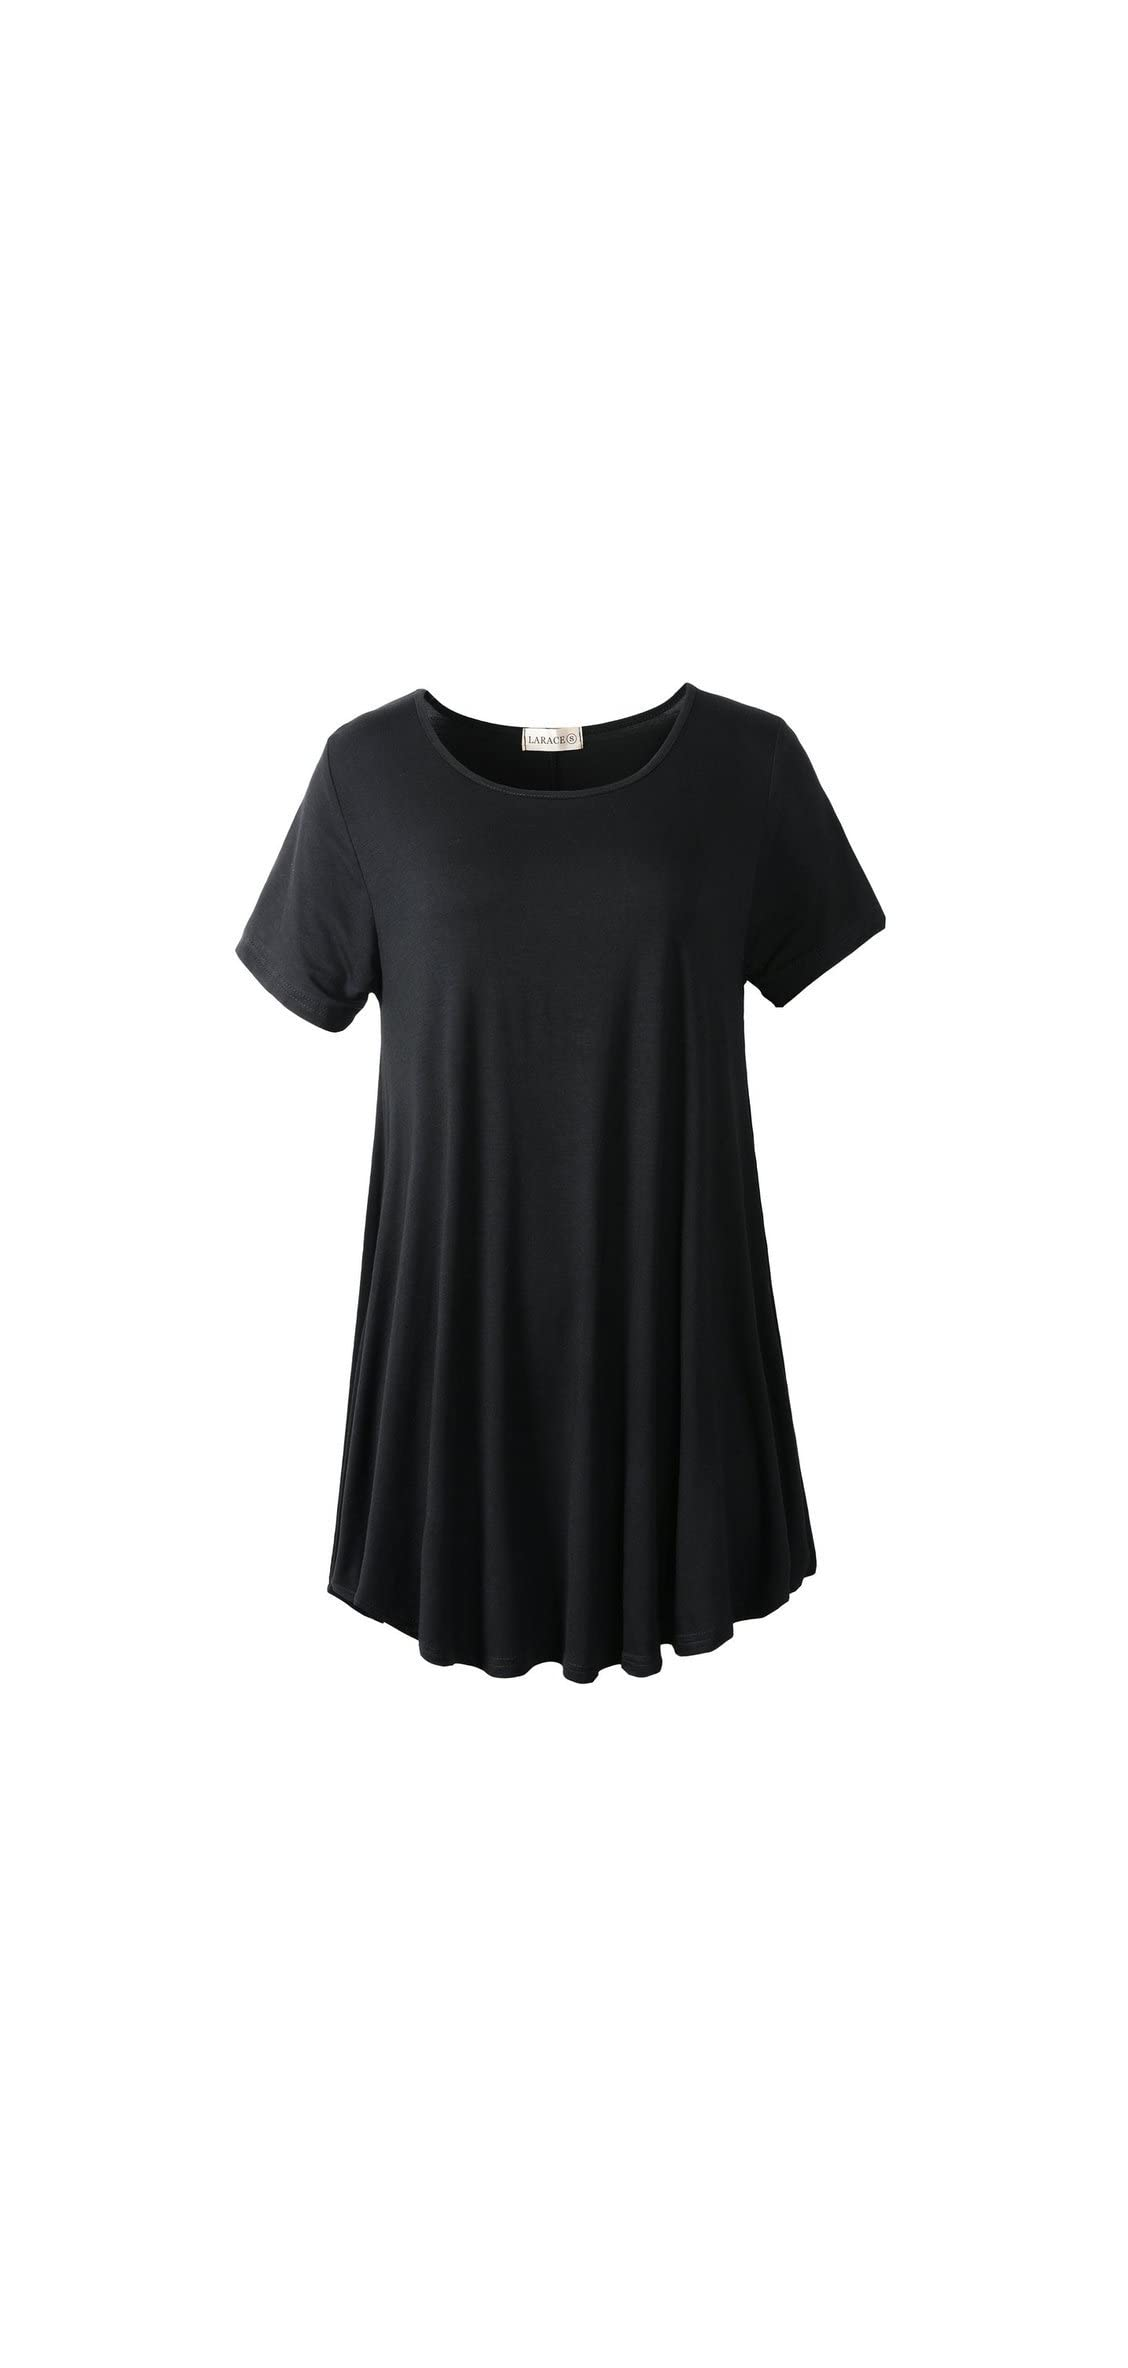 Women Short Sleeves Flare Tunic Tops For Leggings Flowy